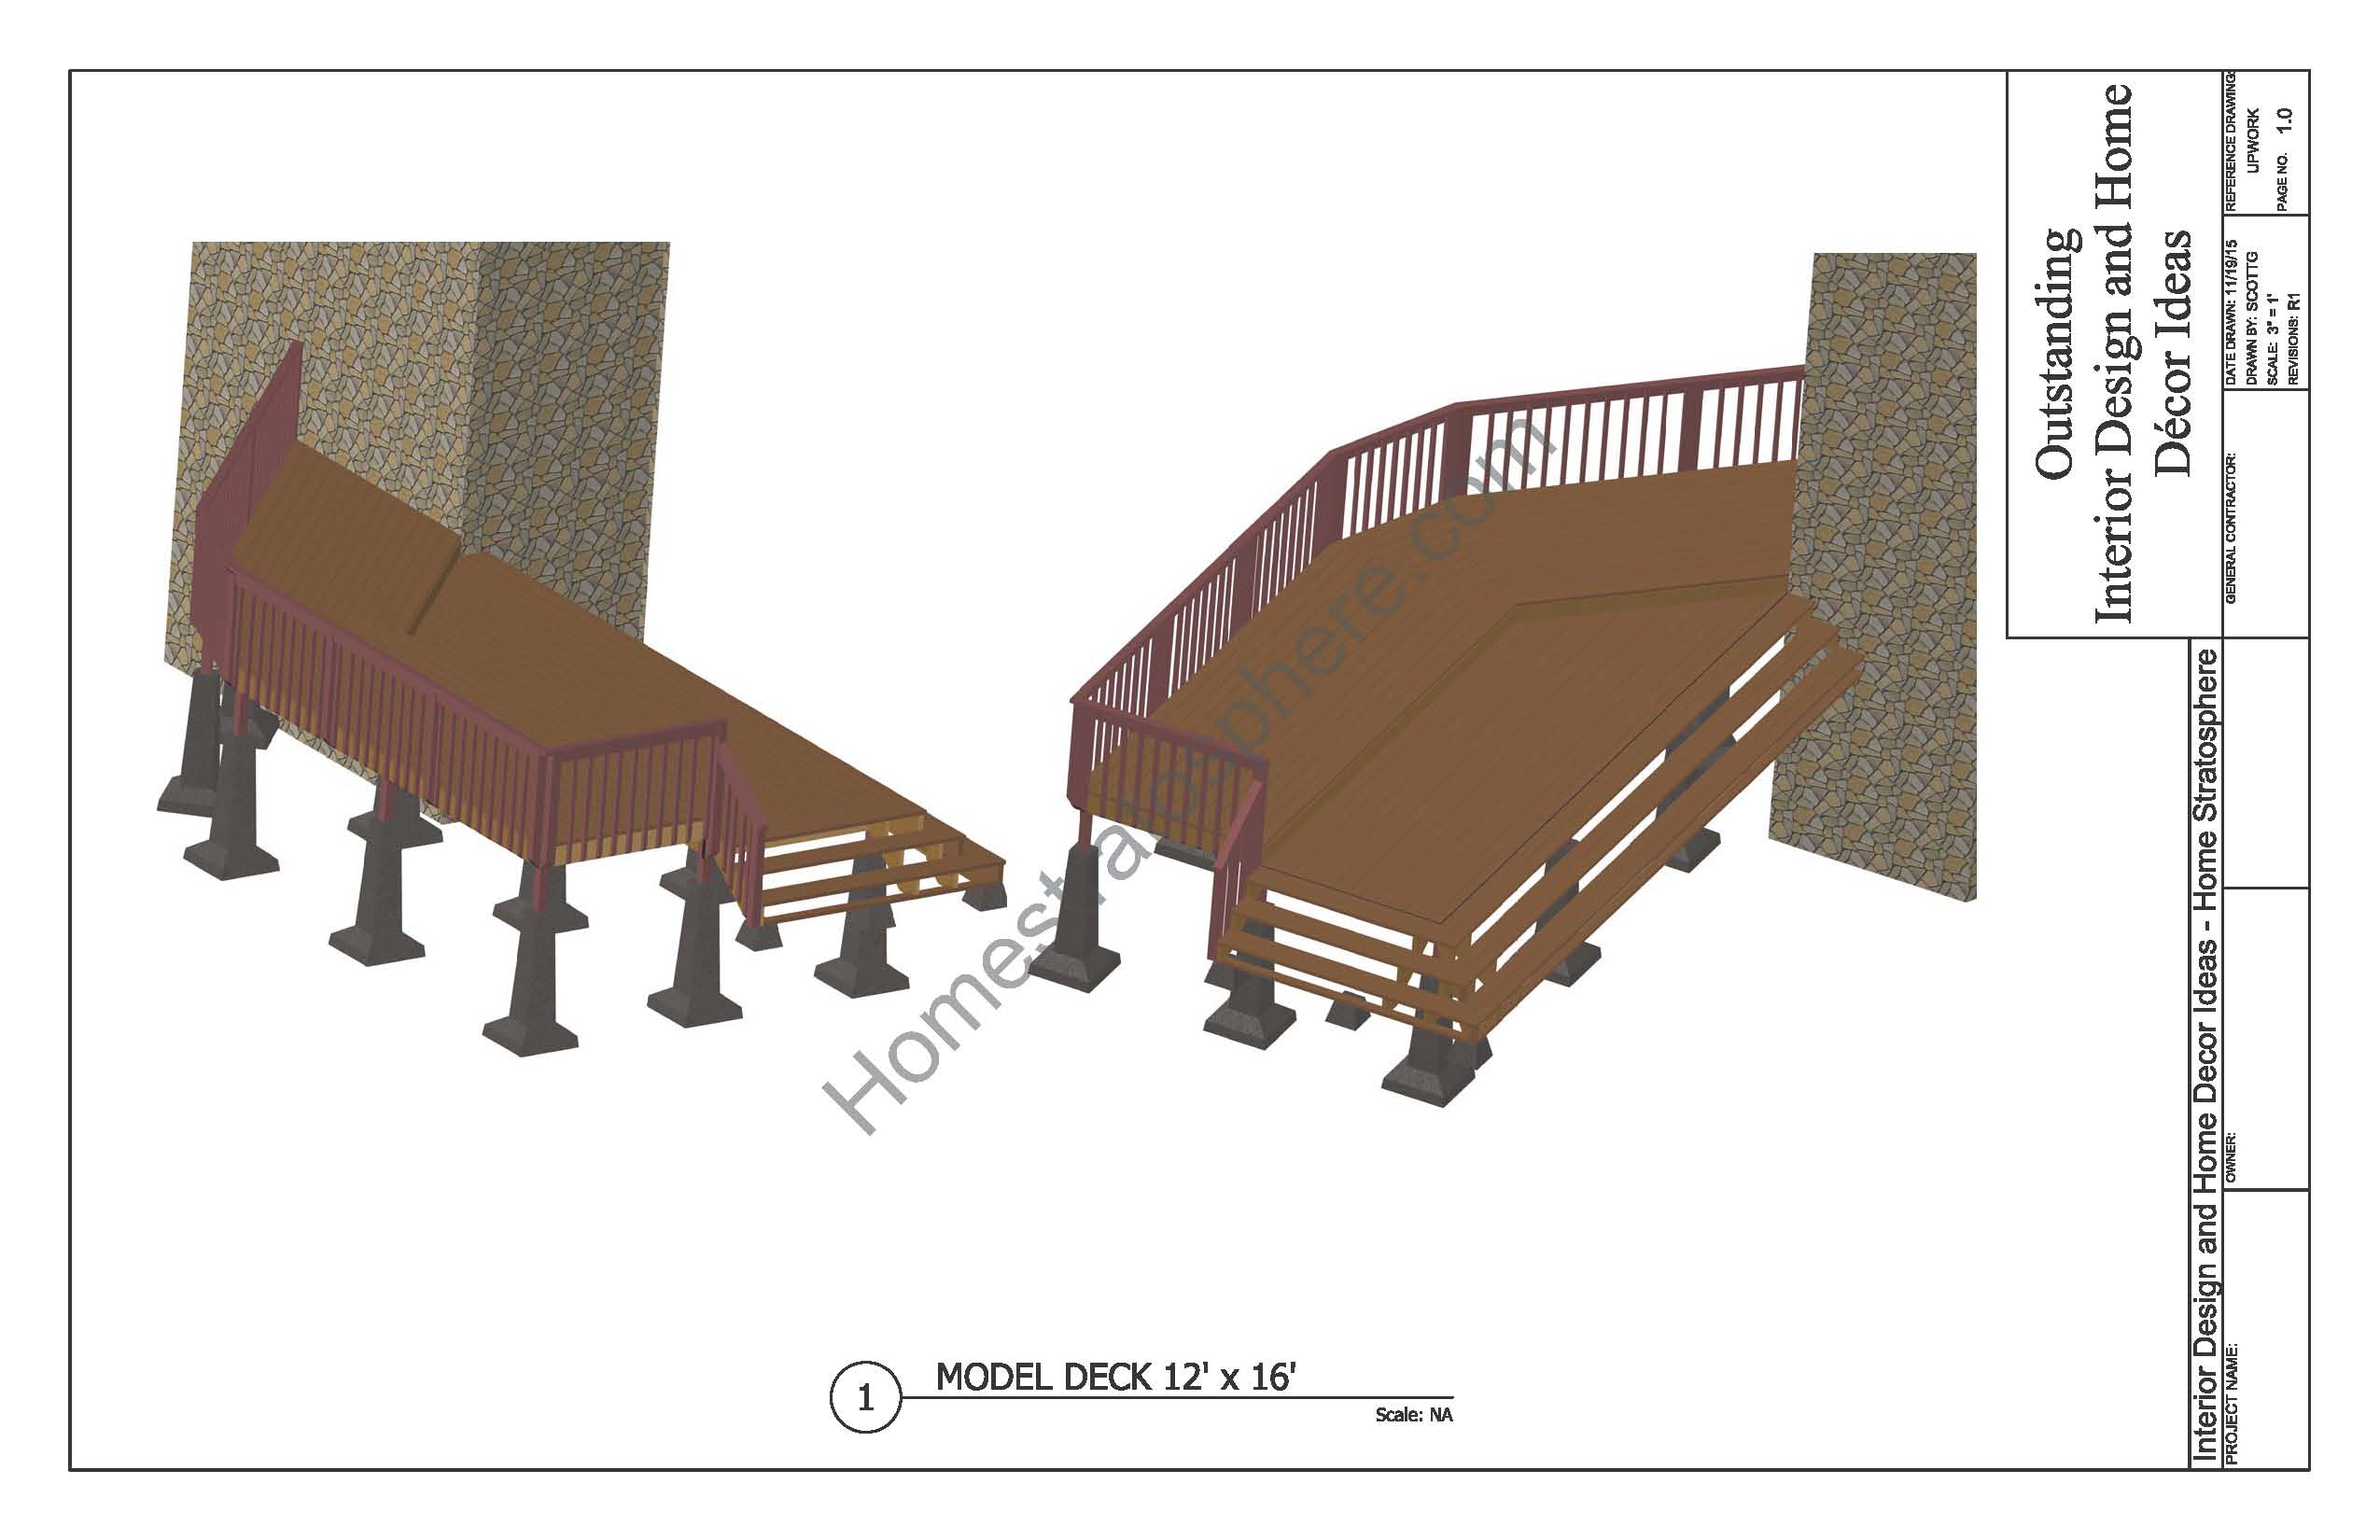 Free deck plans and blueprints online with pdf downloads for Deck blueprints